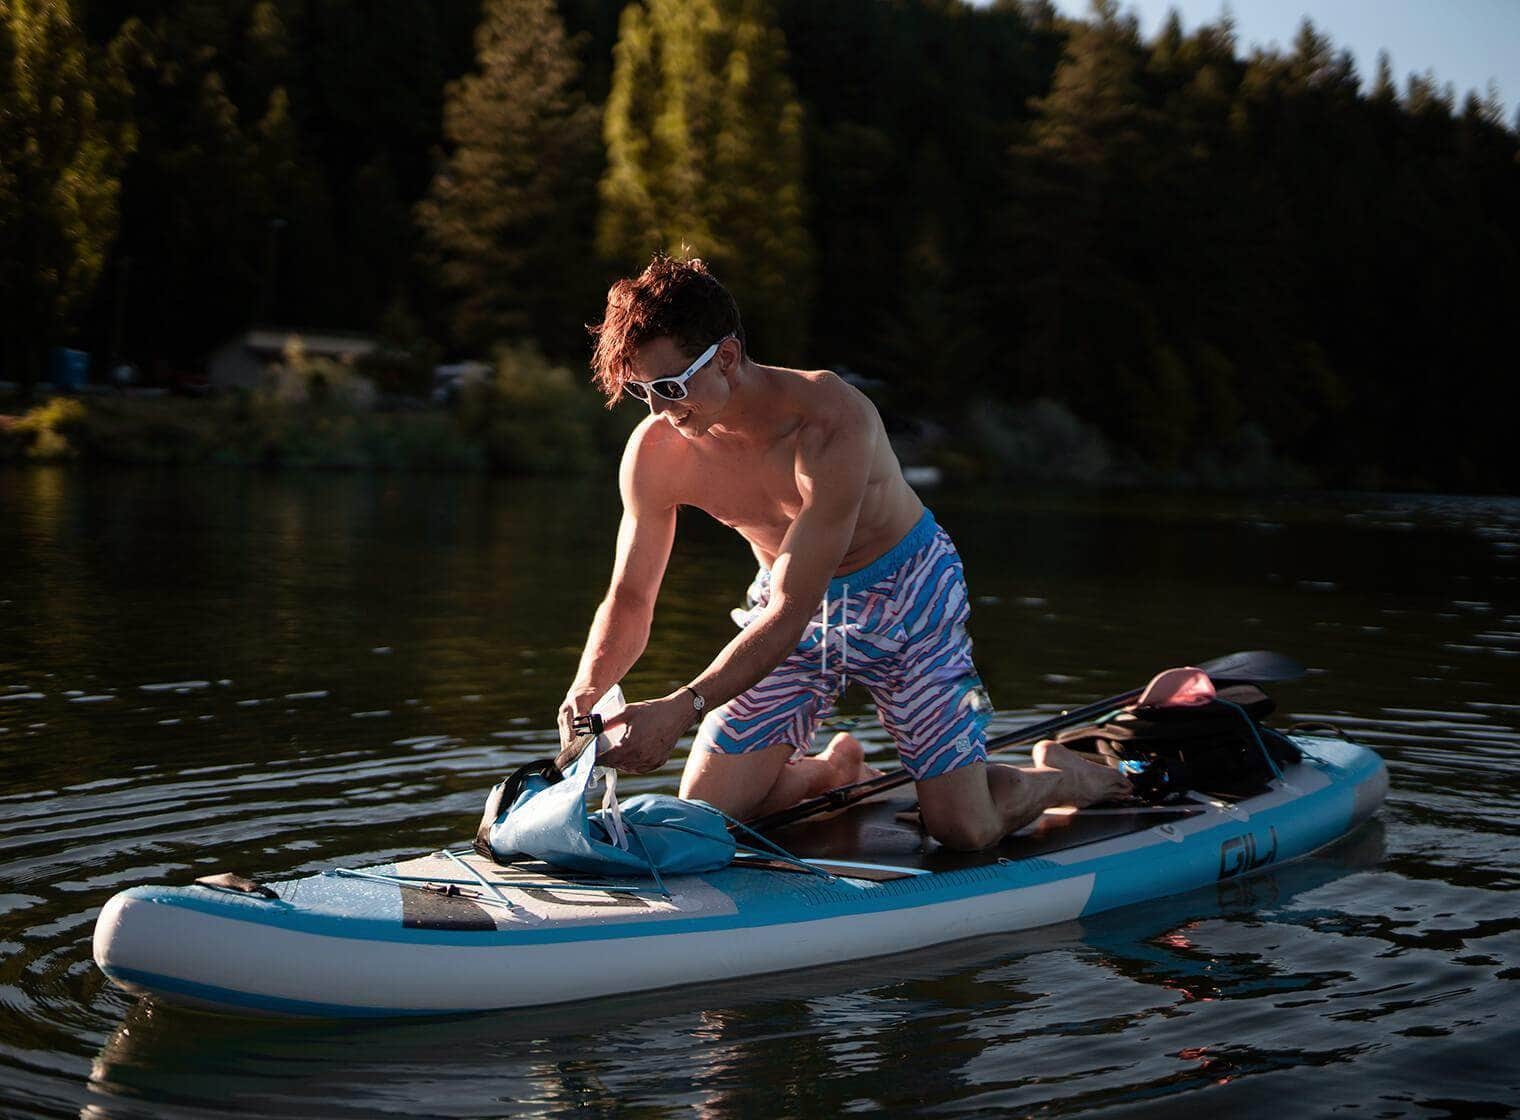 Paddle board fishing - accessories